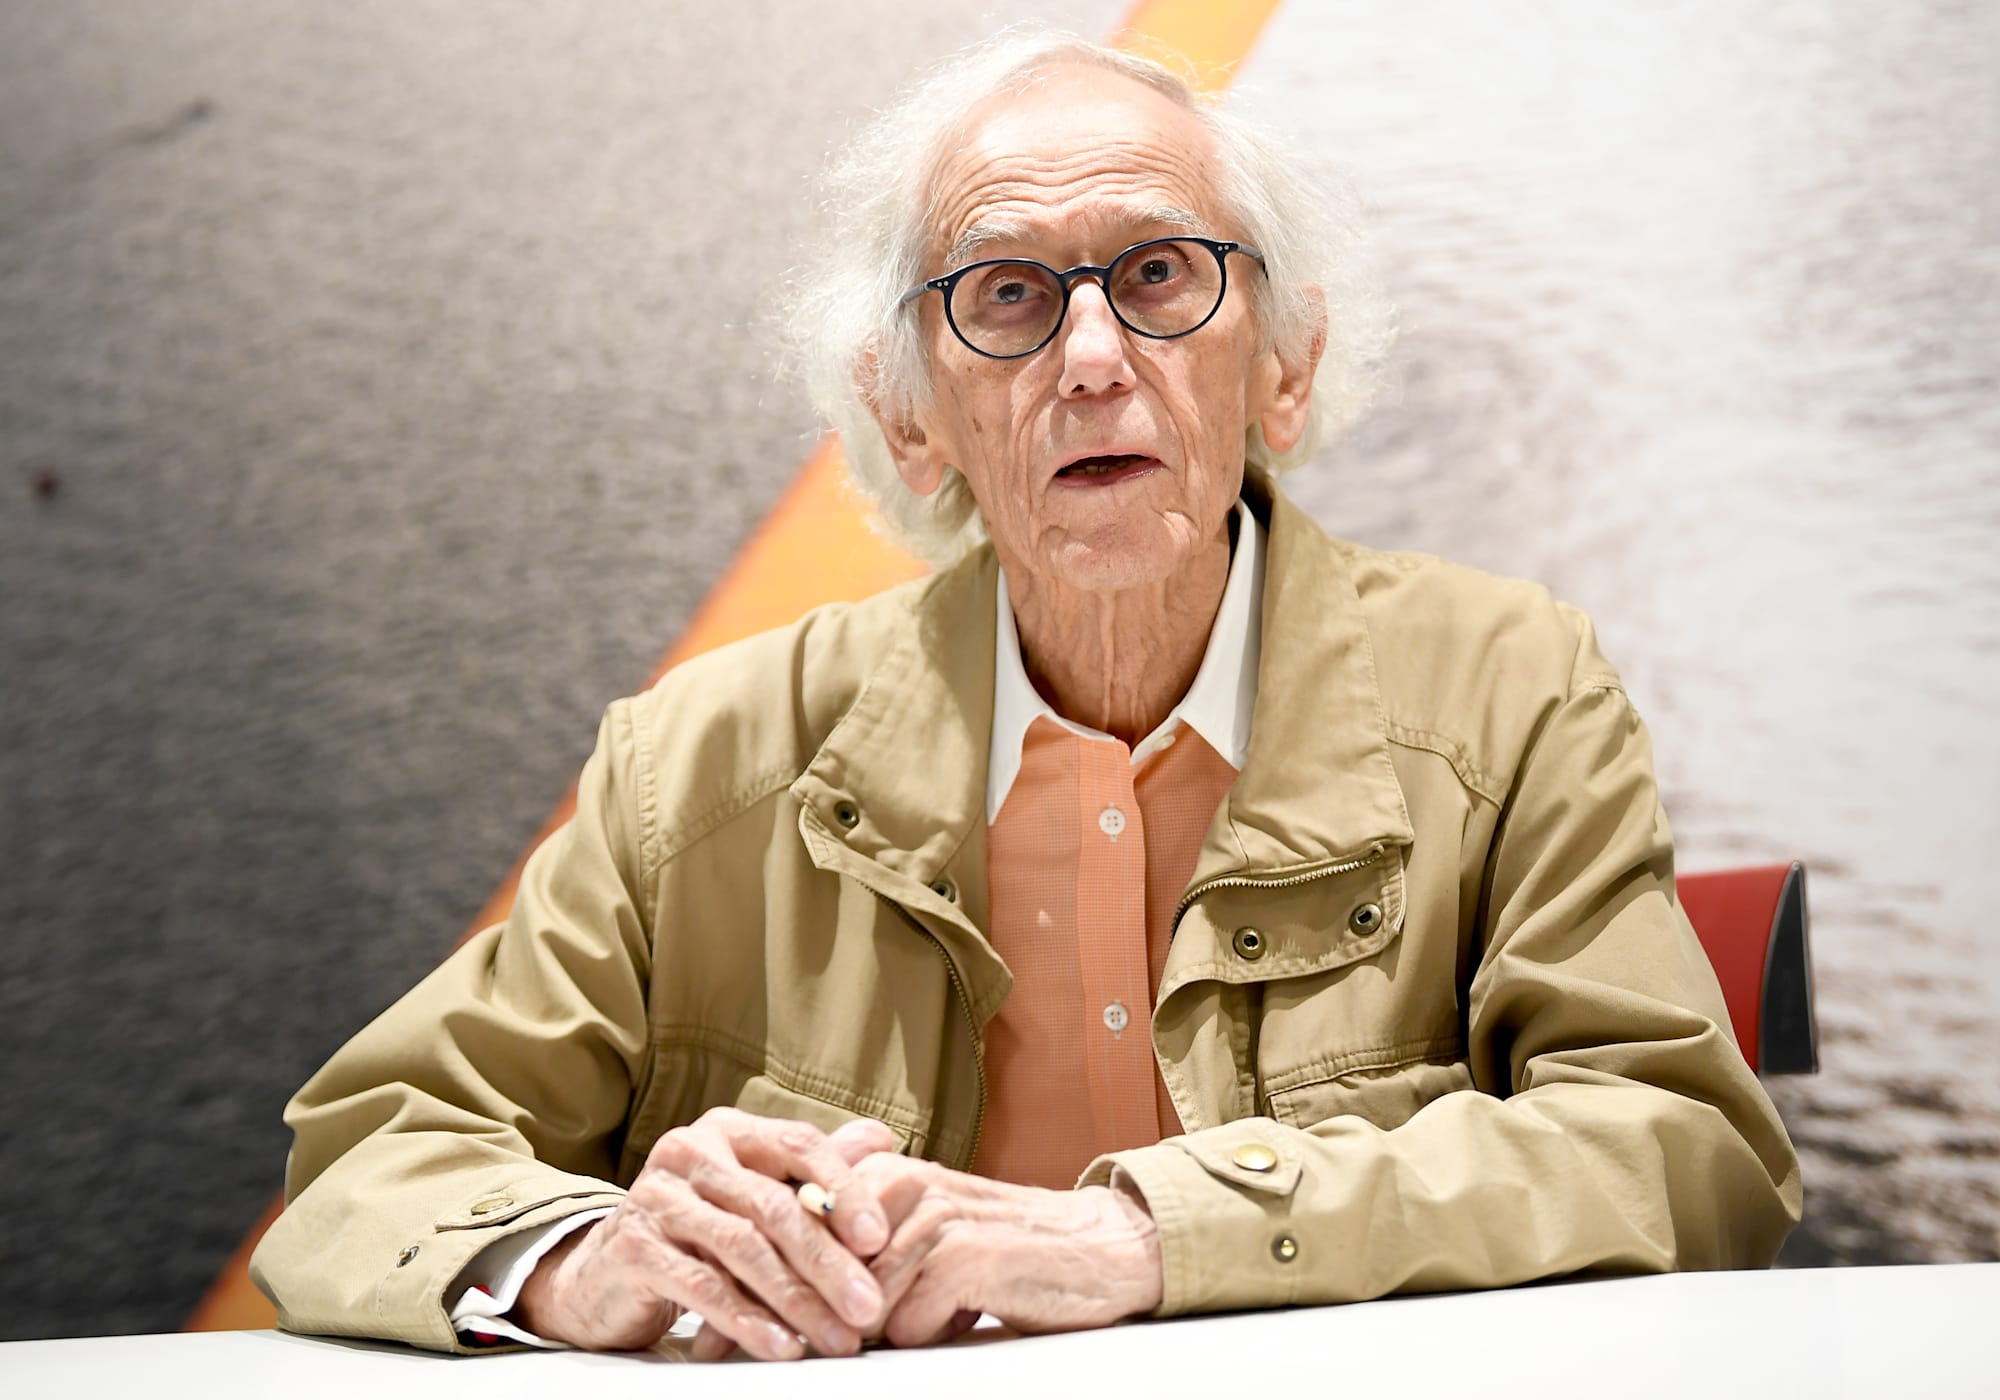 Wrapping artist Christo in Berlin